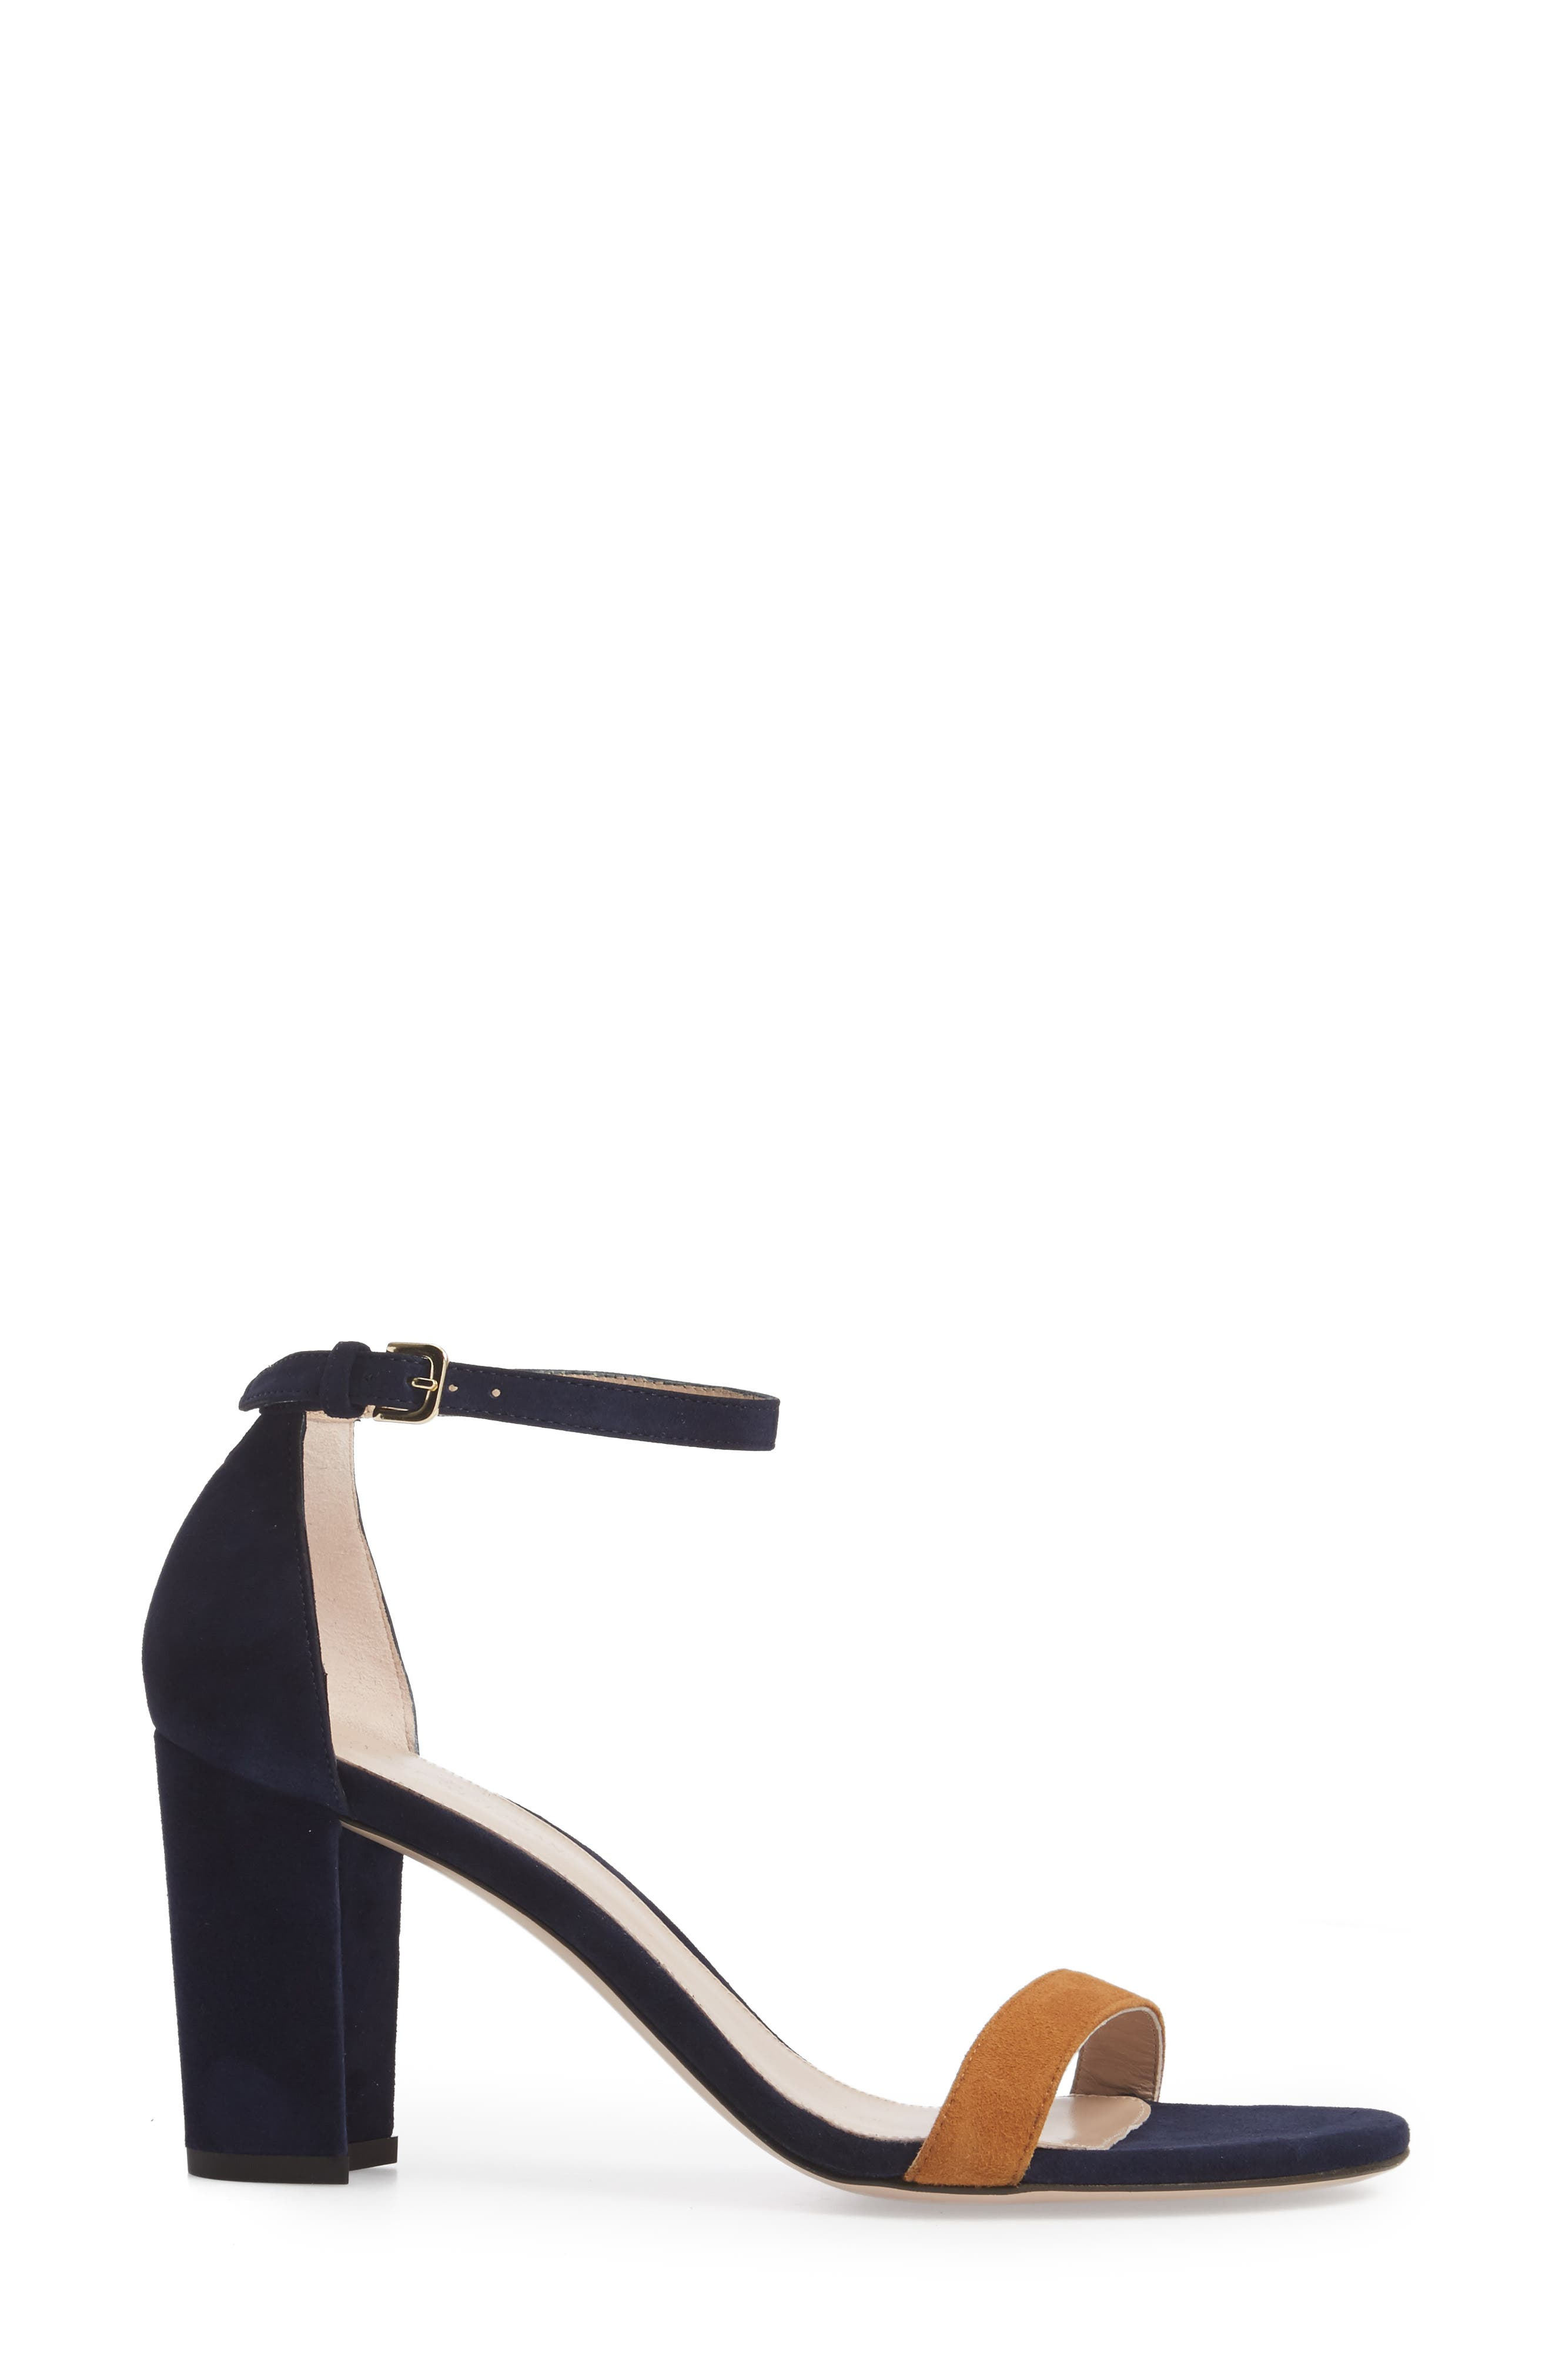 NearlyNude Ankle Strap Sandal,                             Alternate thumbnail 57, color,